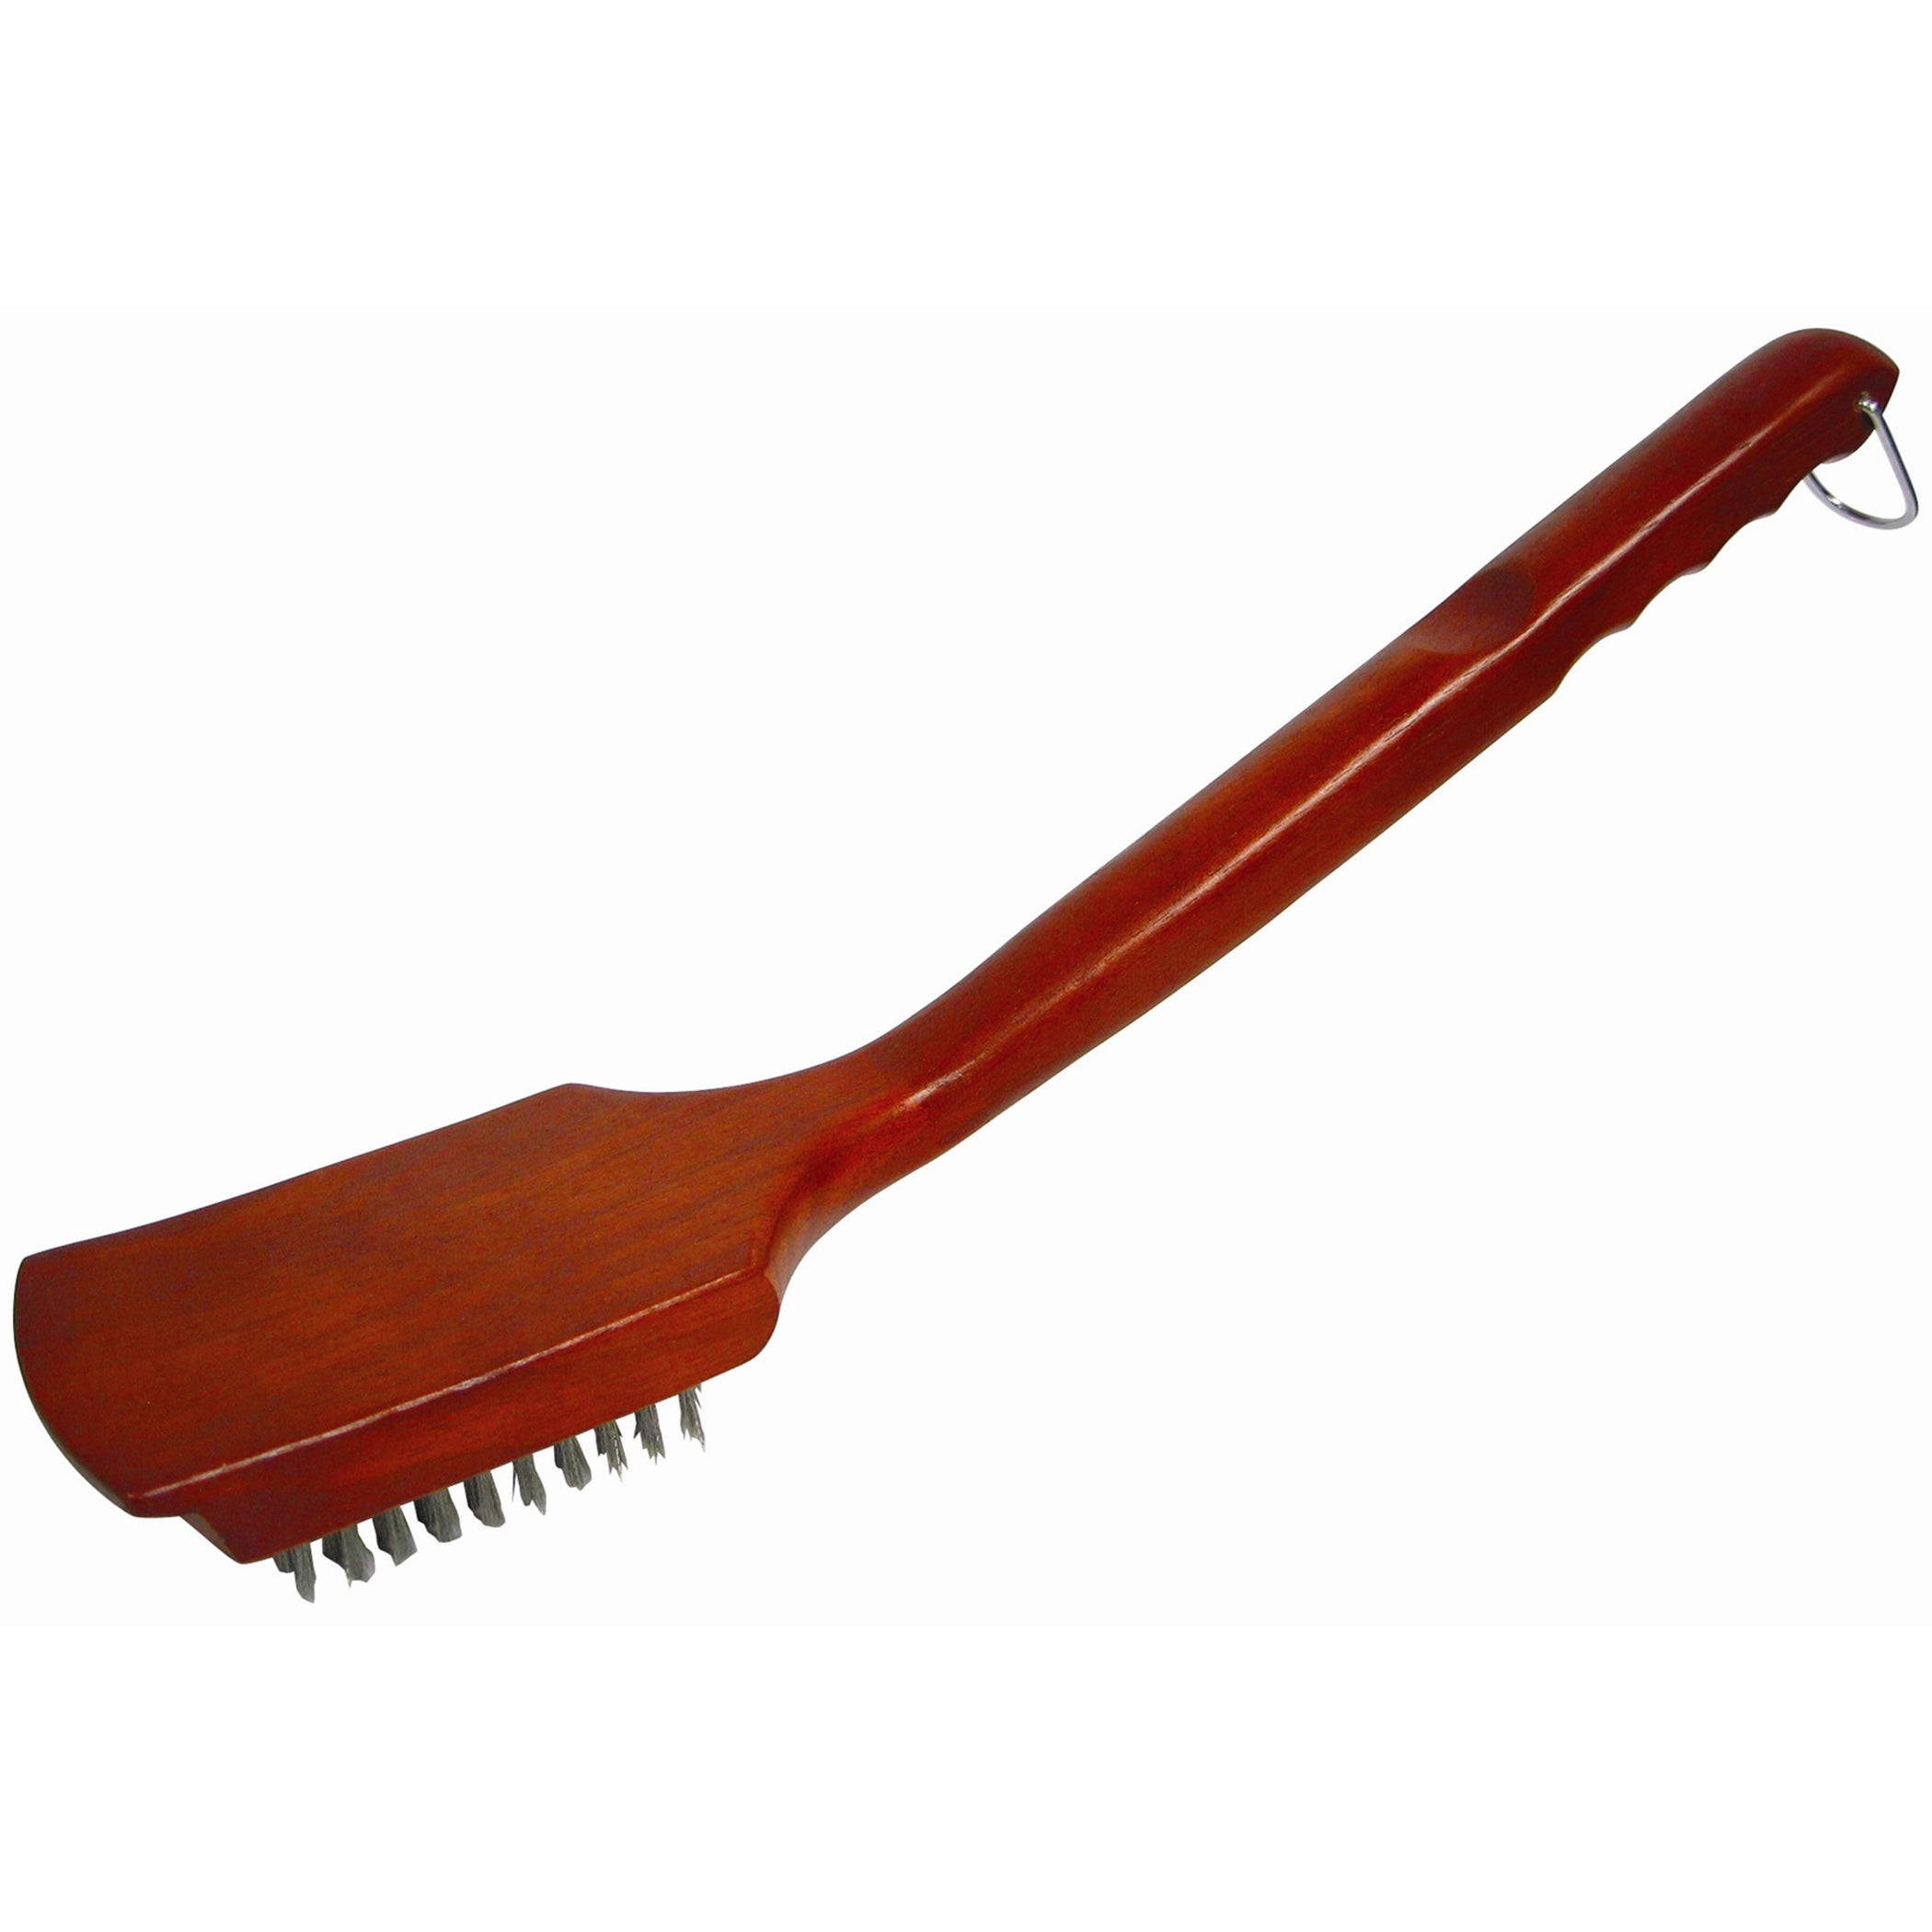 "GrillPro 70255 18"" Grill Brush With Heavy Duty Hardwood H..."